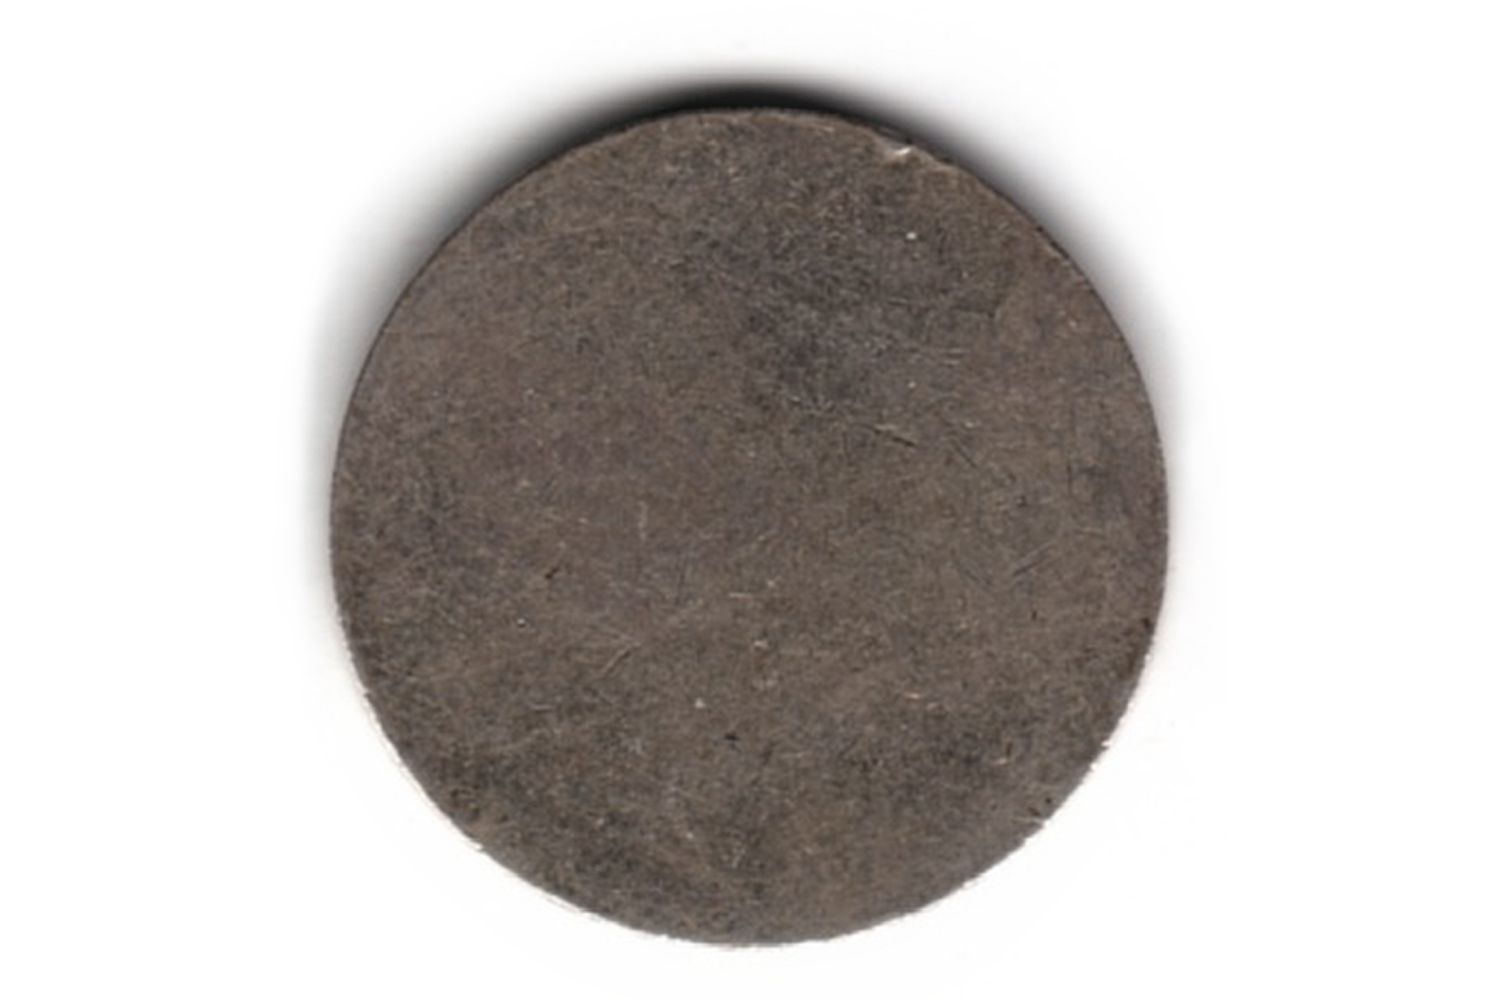 a coin blank for a United States nickel.